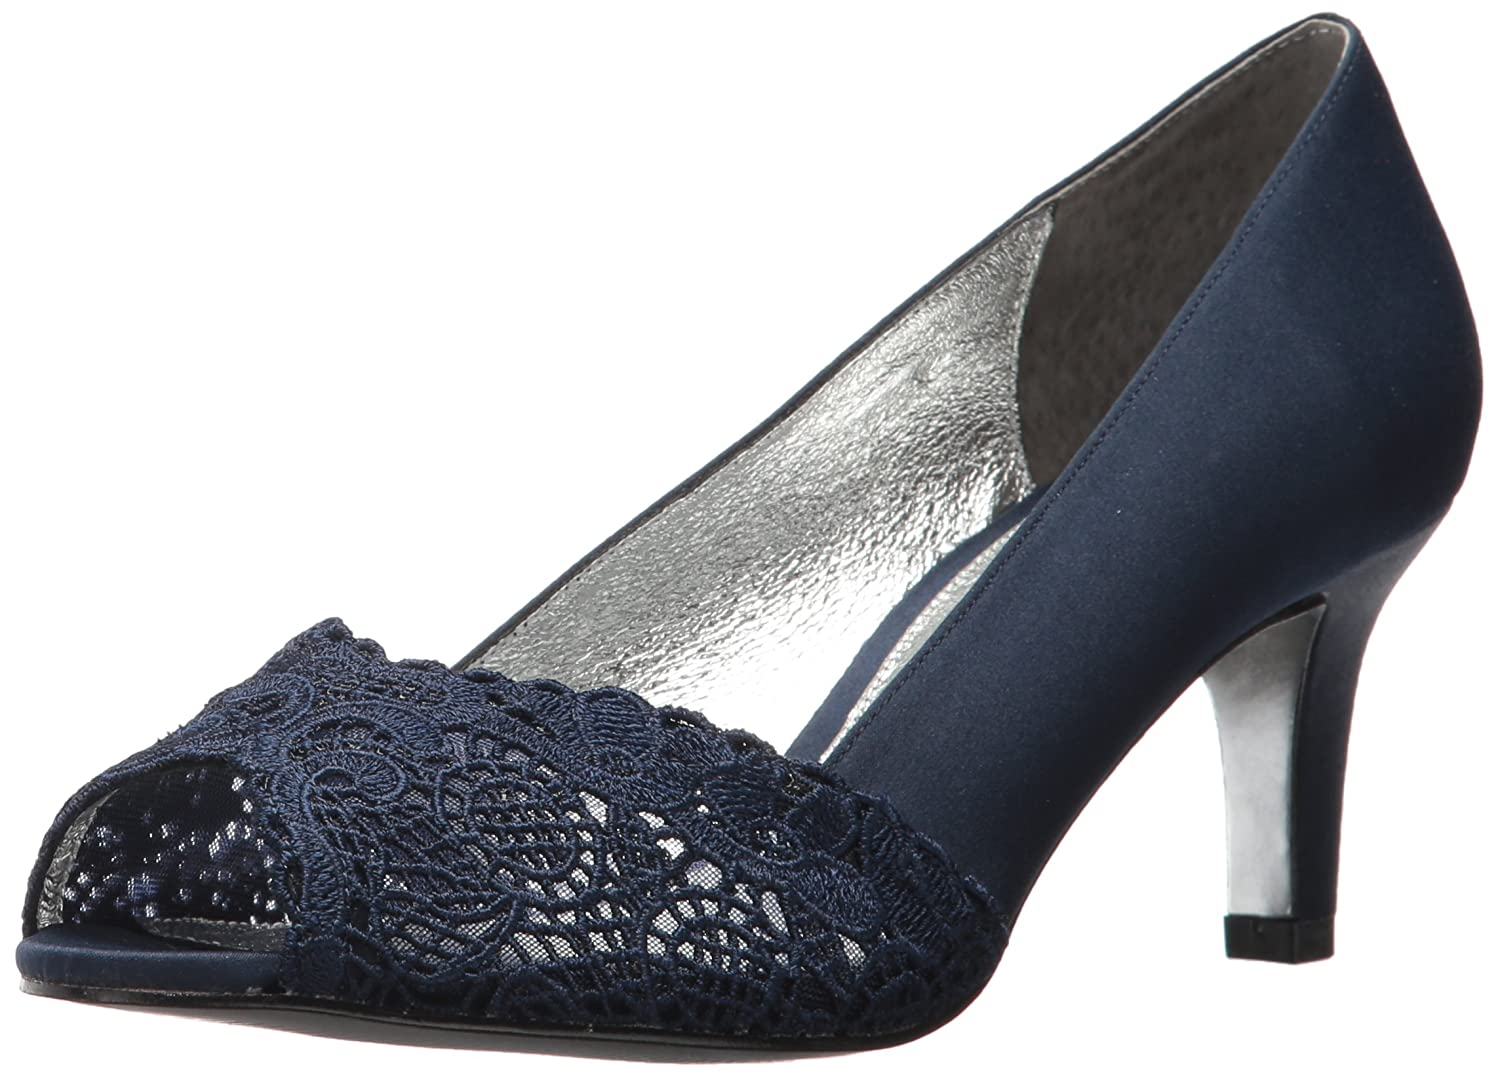 Adrianna Papell Women's Jude Pump B0746WN5DZ 7 W US|Navy Satin